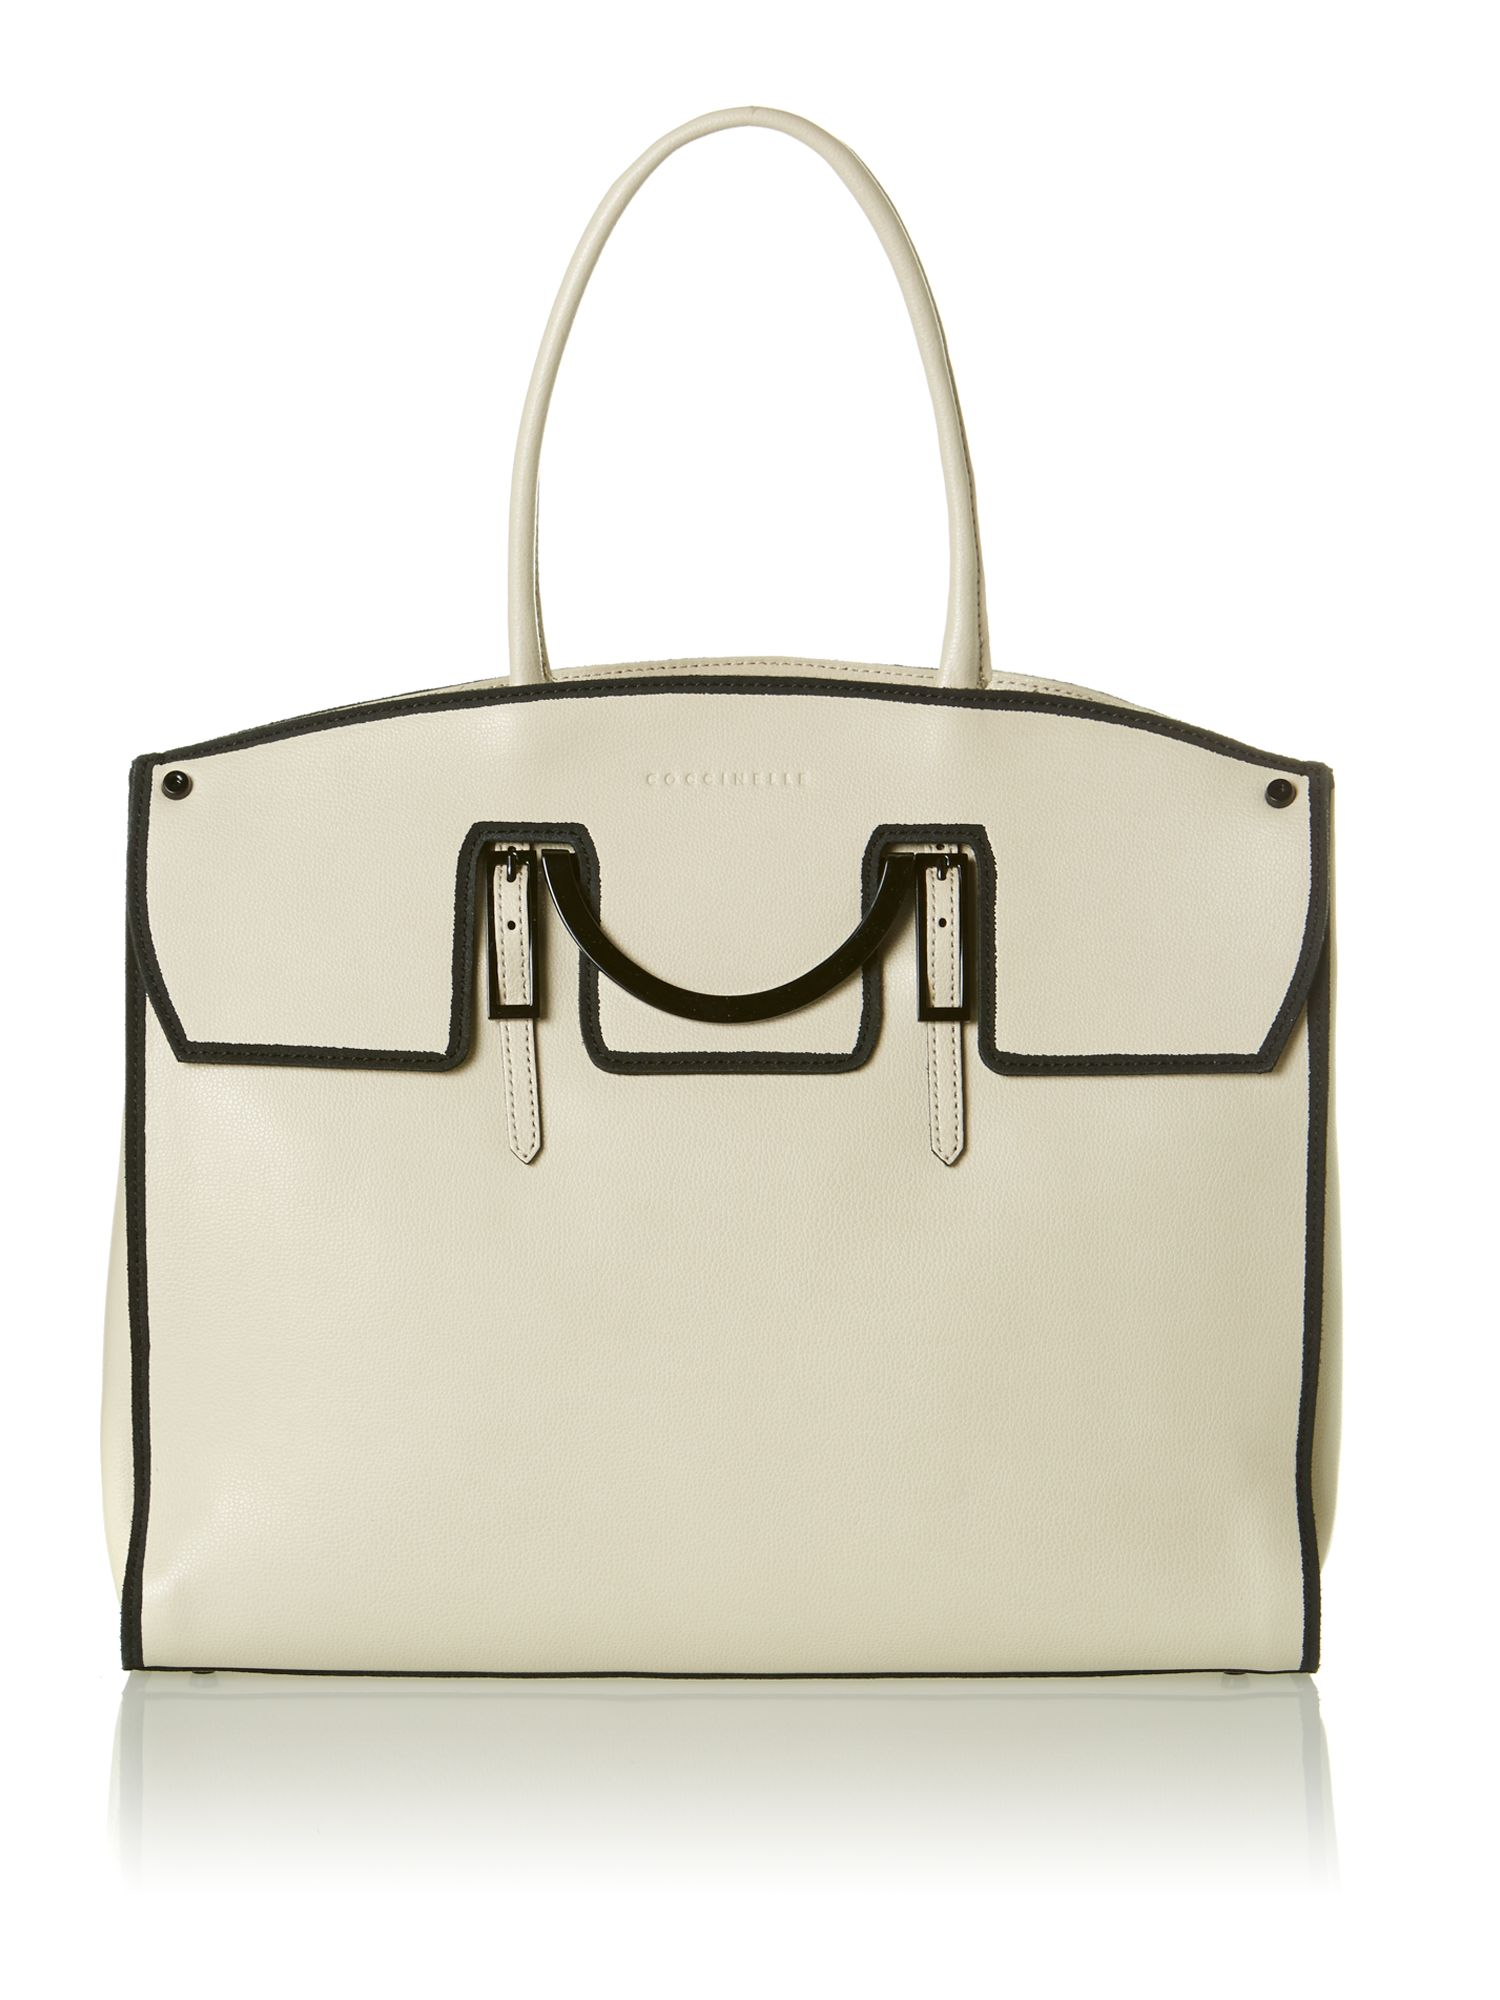 Celeste design tote bag